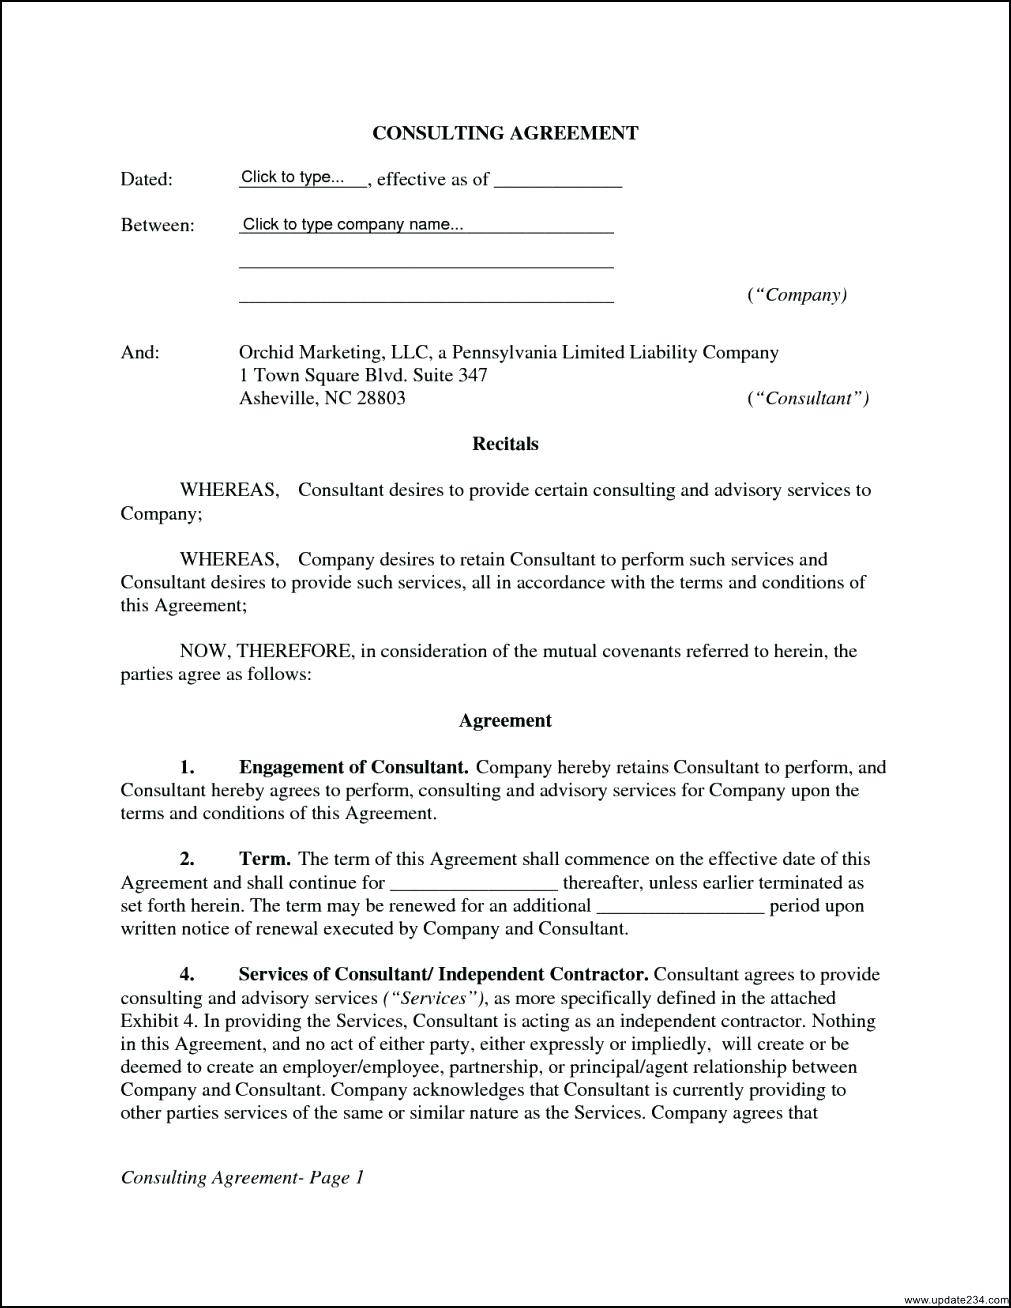 Simple Consulting Agreement Template